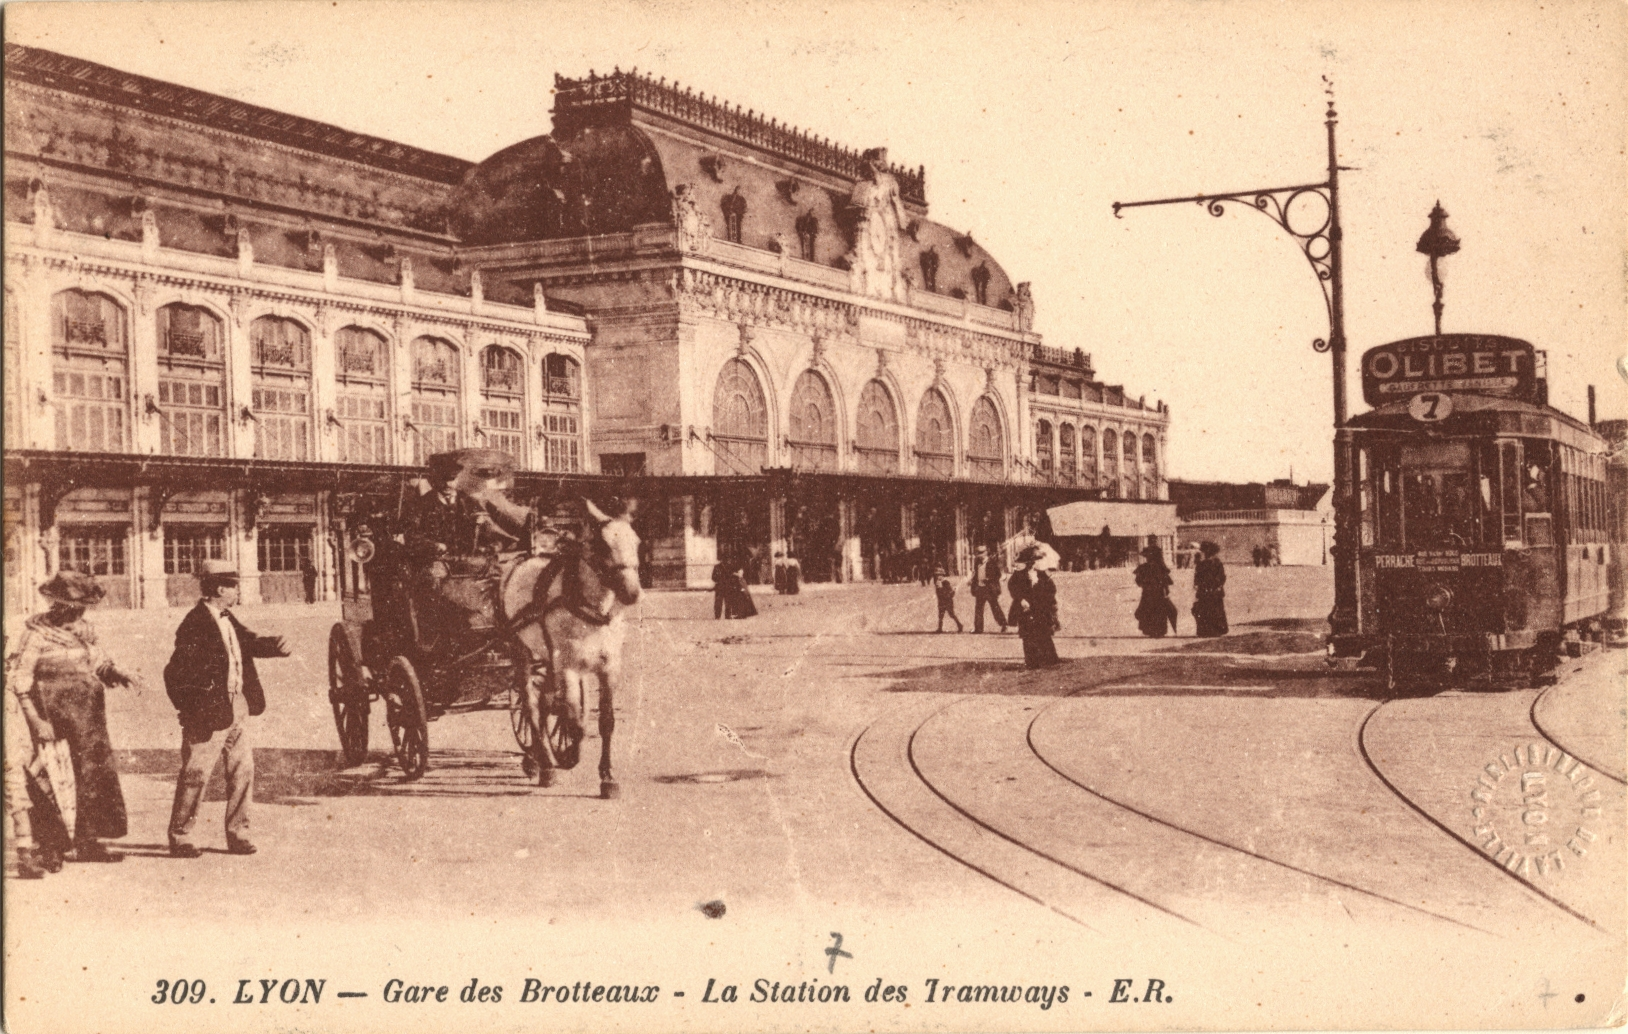 photographes en rh ne alpes lyon gare des brotteaux la station des tramways. Black Bedroom Furniture Sets. Home Design Ideas